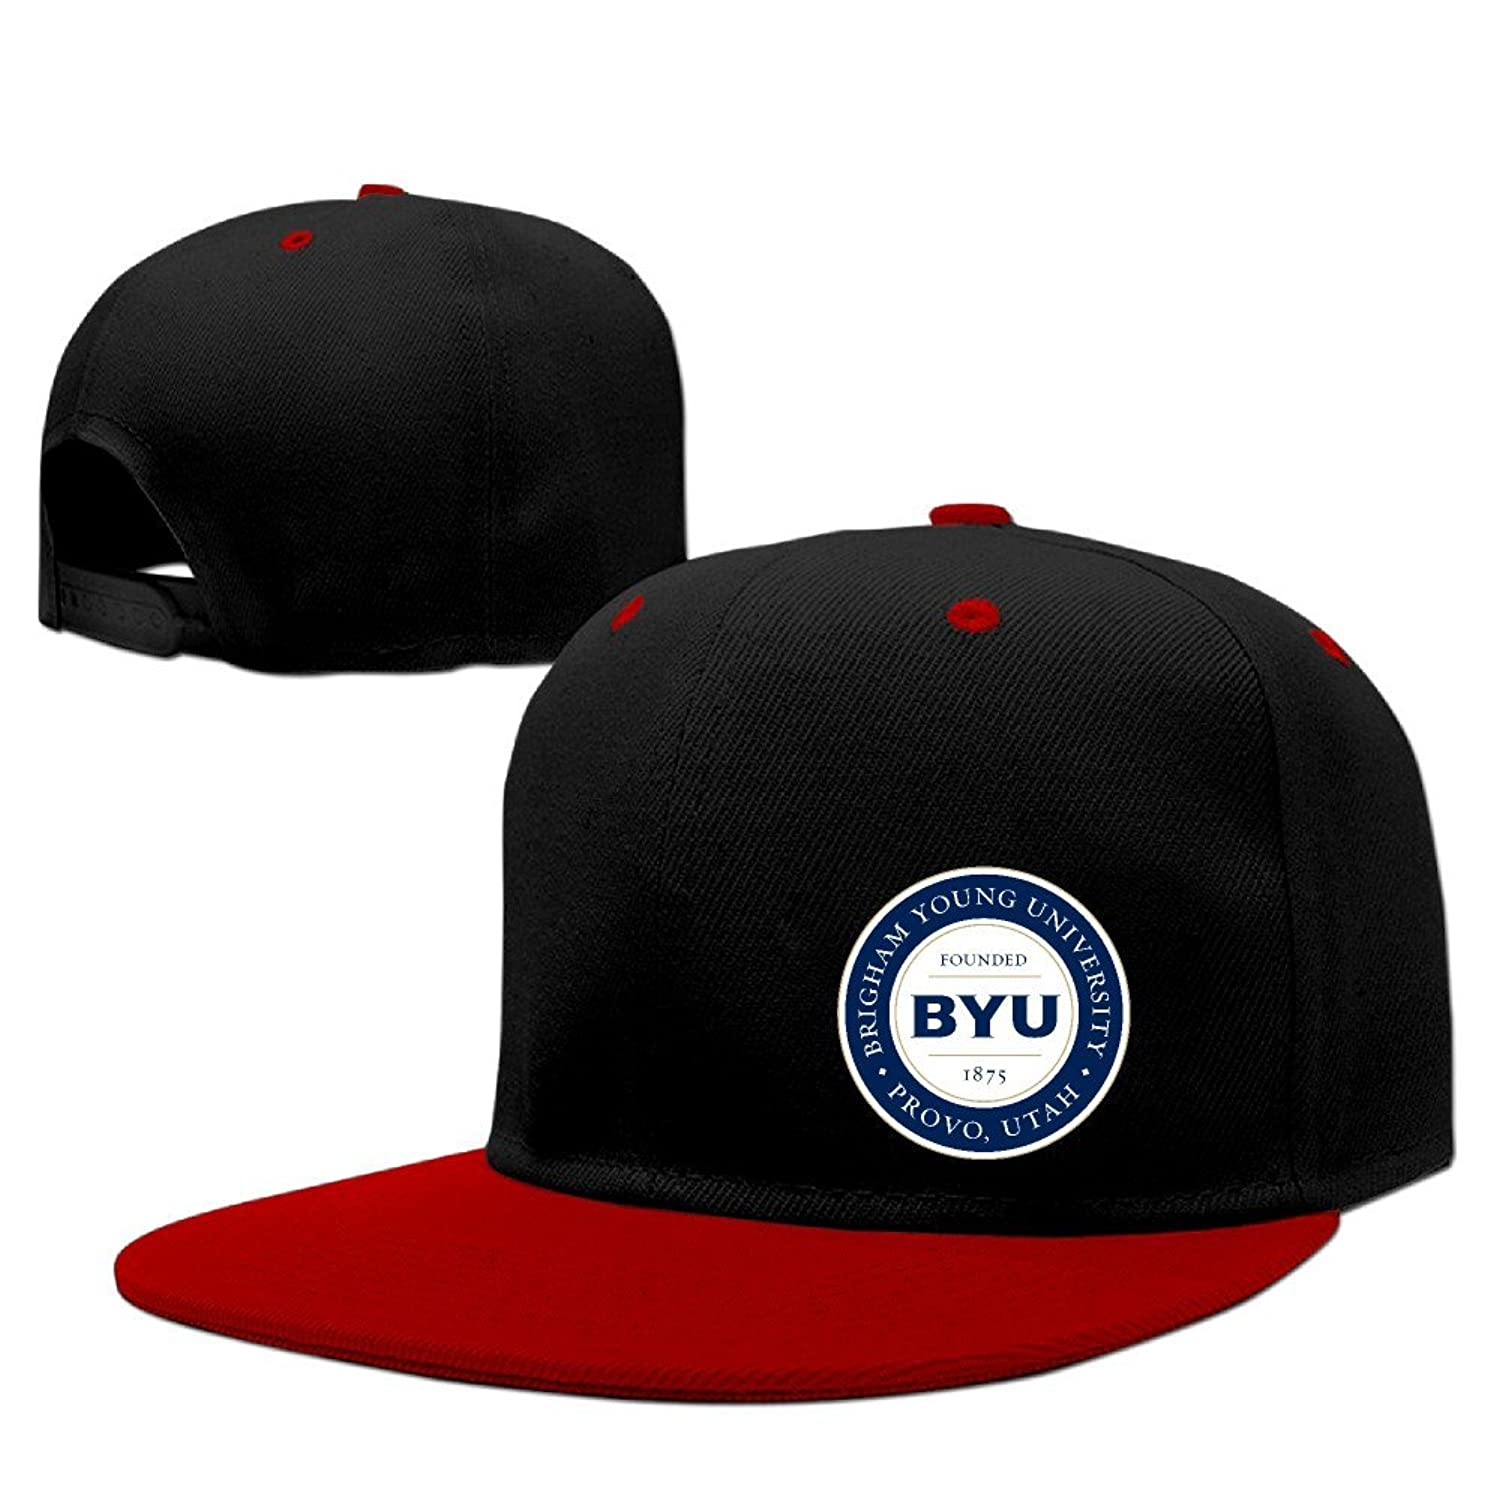 POPYol BYU Medallion Logo Snapback Adjustable Hip Pop Baseball Caps Hats For Unisex